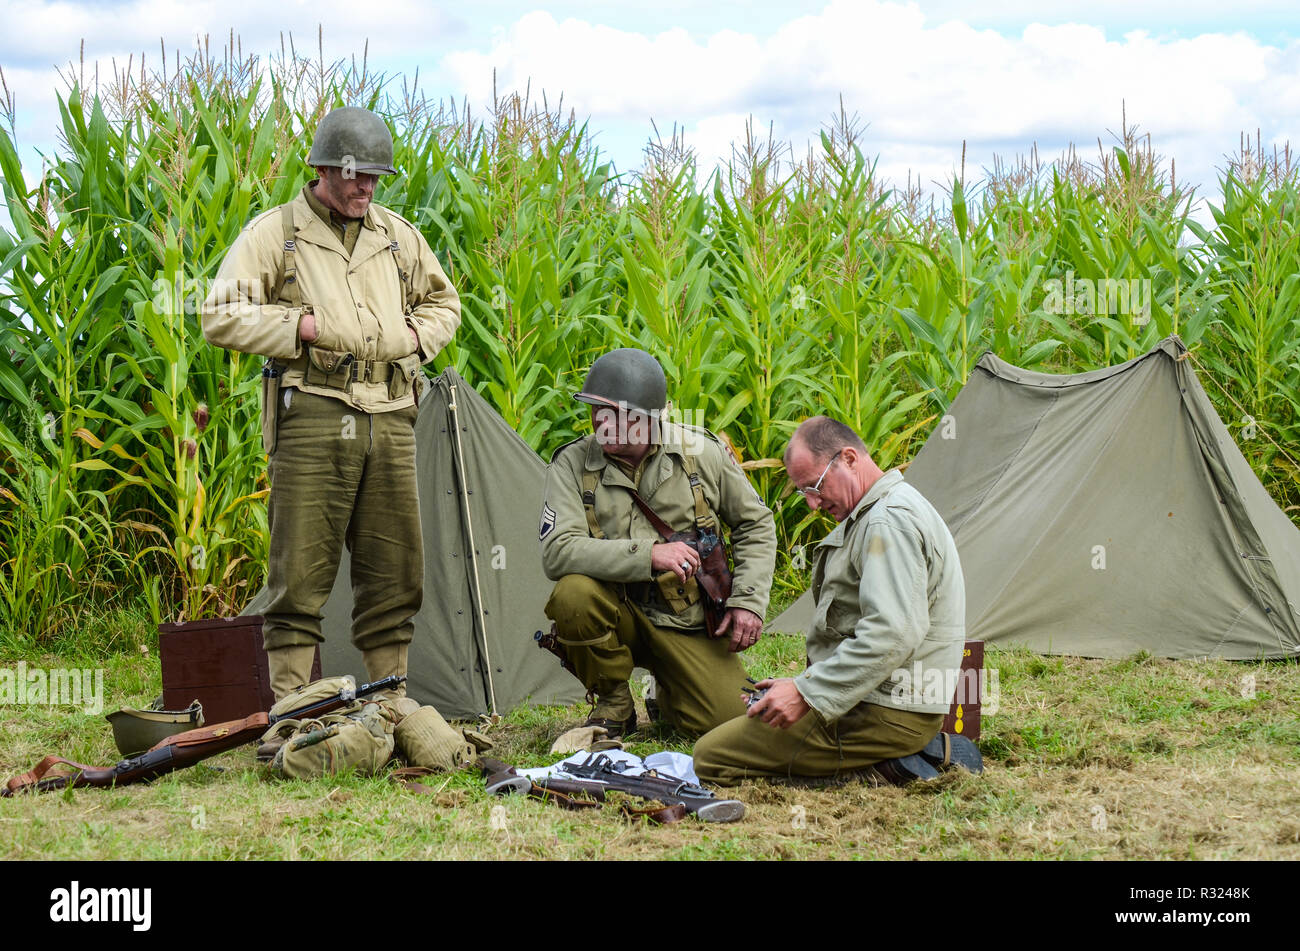 Second World War US Army recreation. Re-enactors in period battledress uniform with tent and equipment Stock Photo